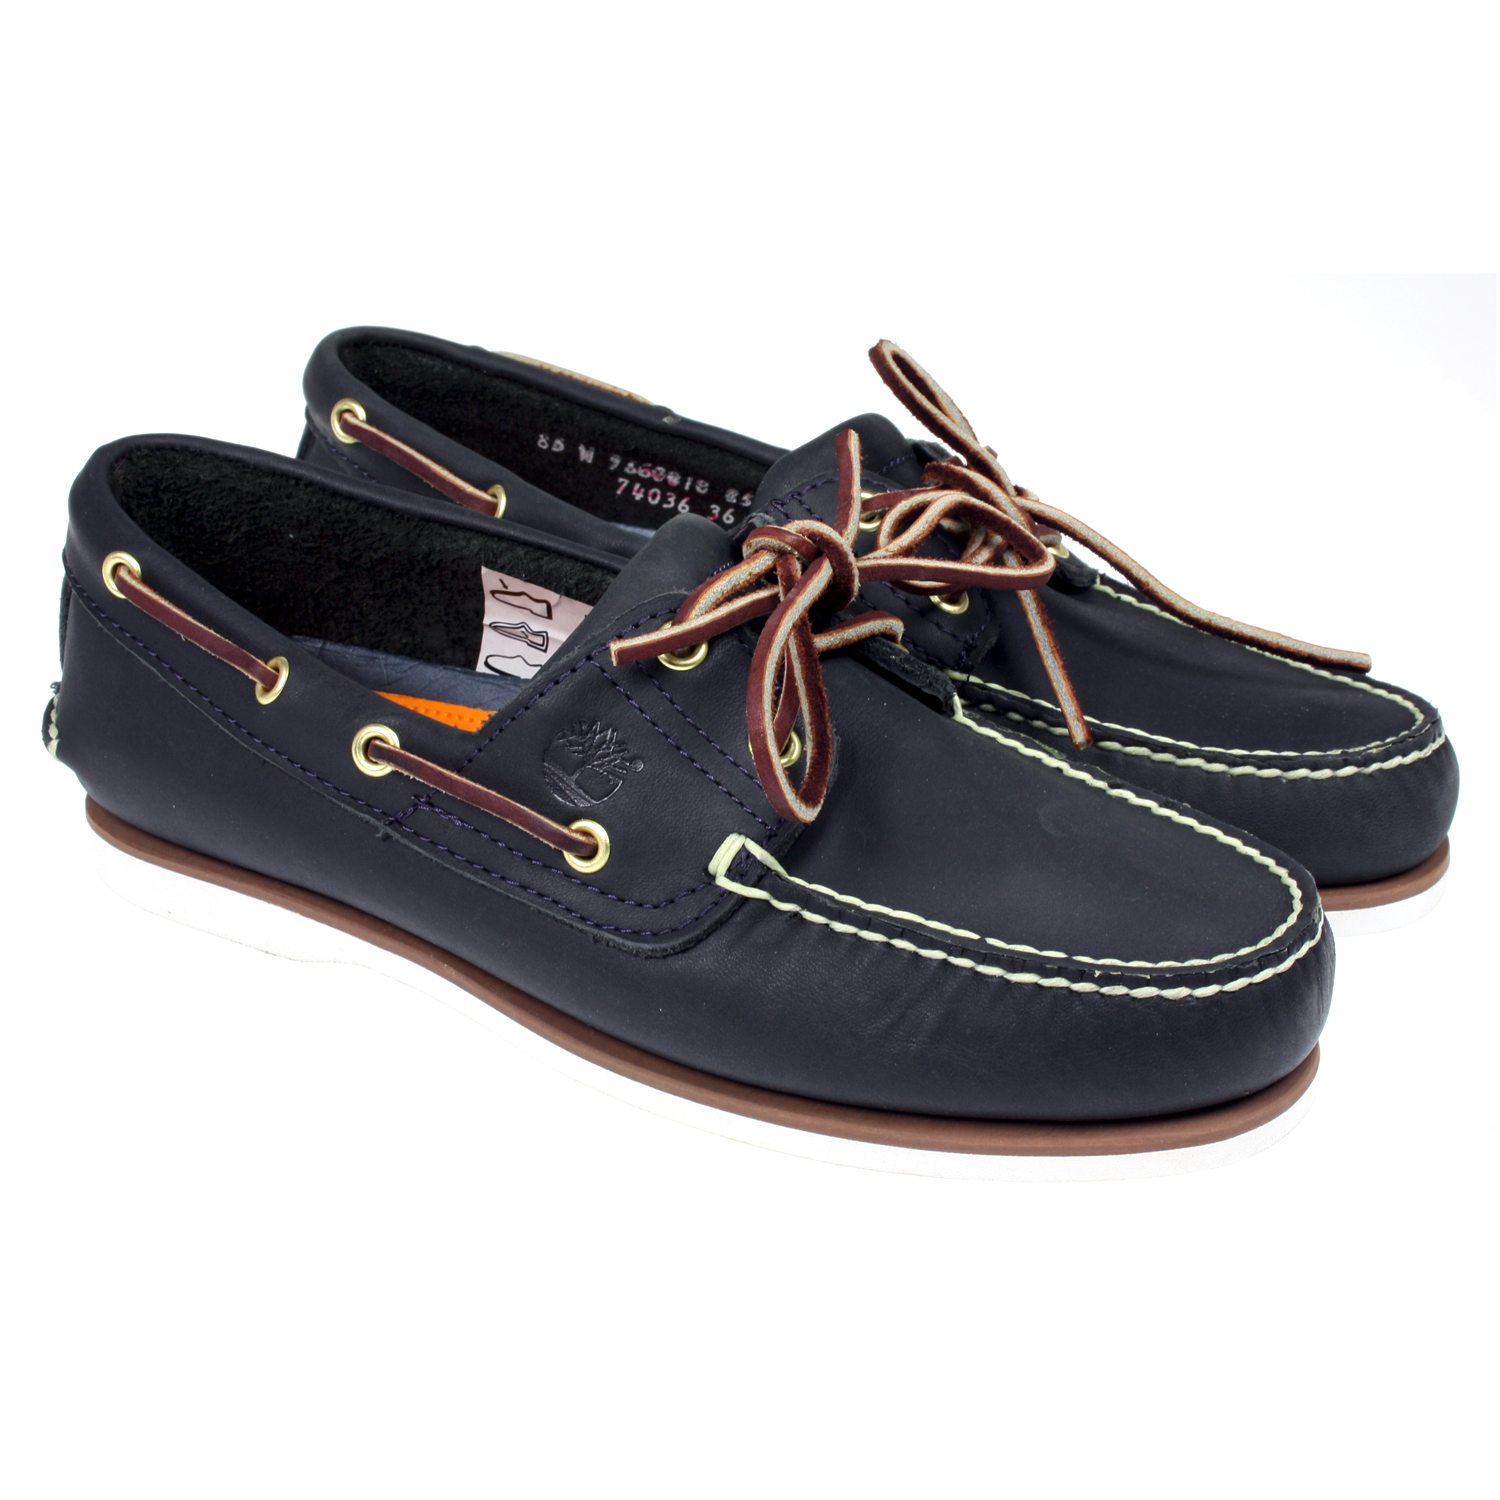 Timberland Womens Boat Shoes Navy Aranjacksoncouk